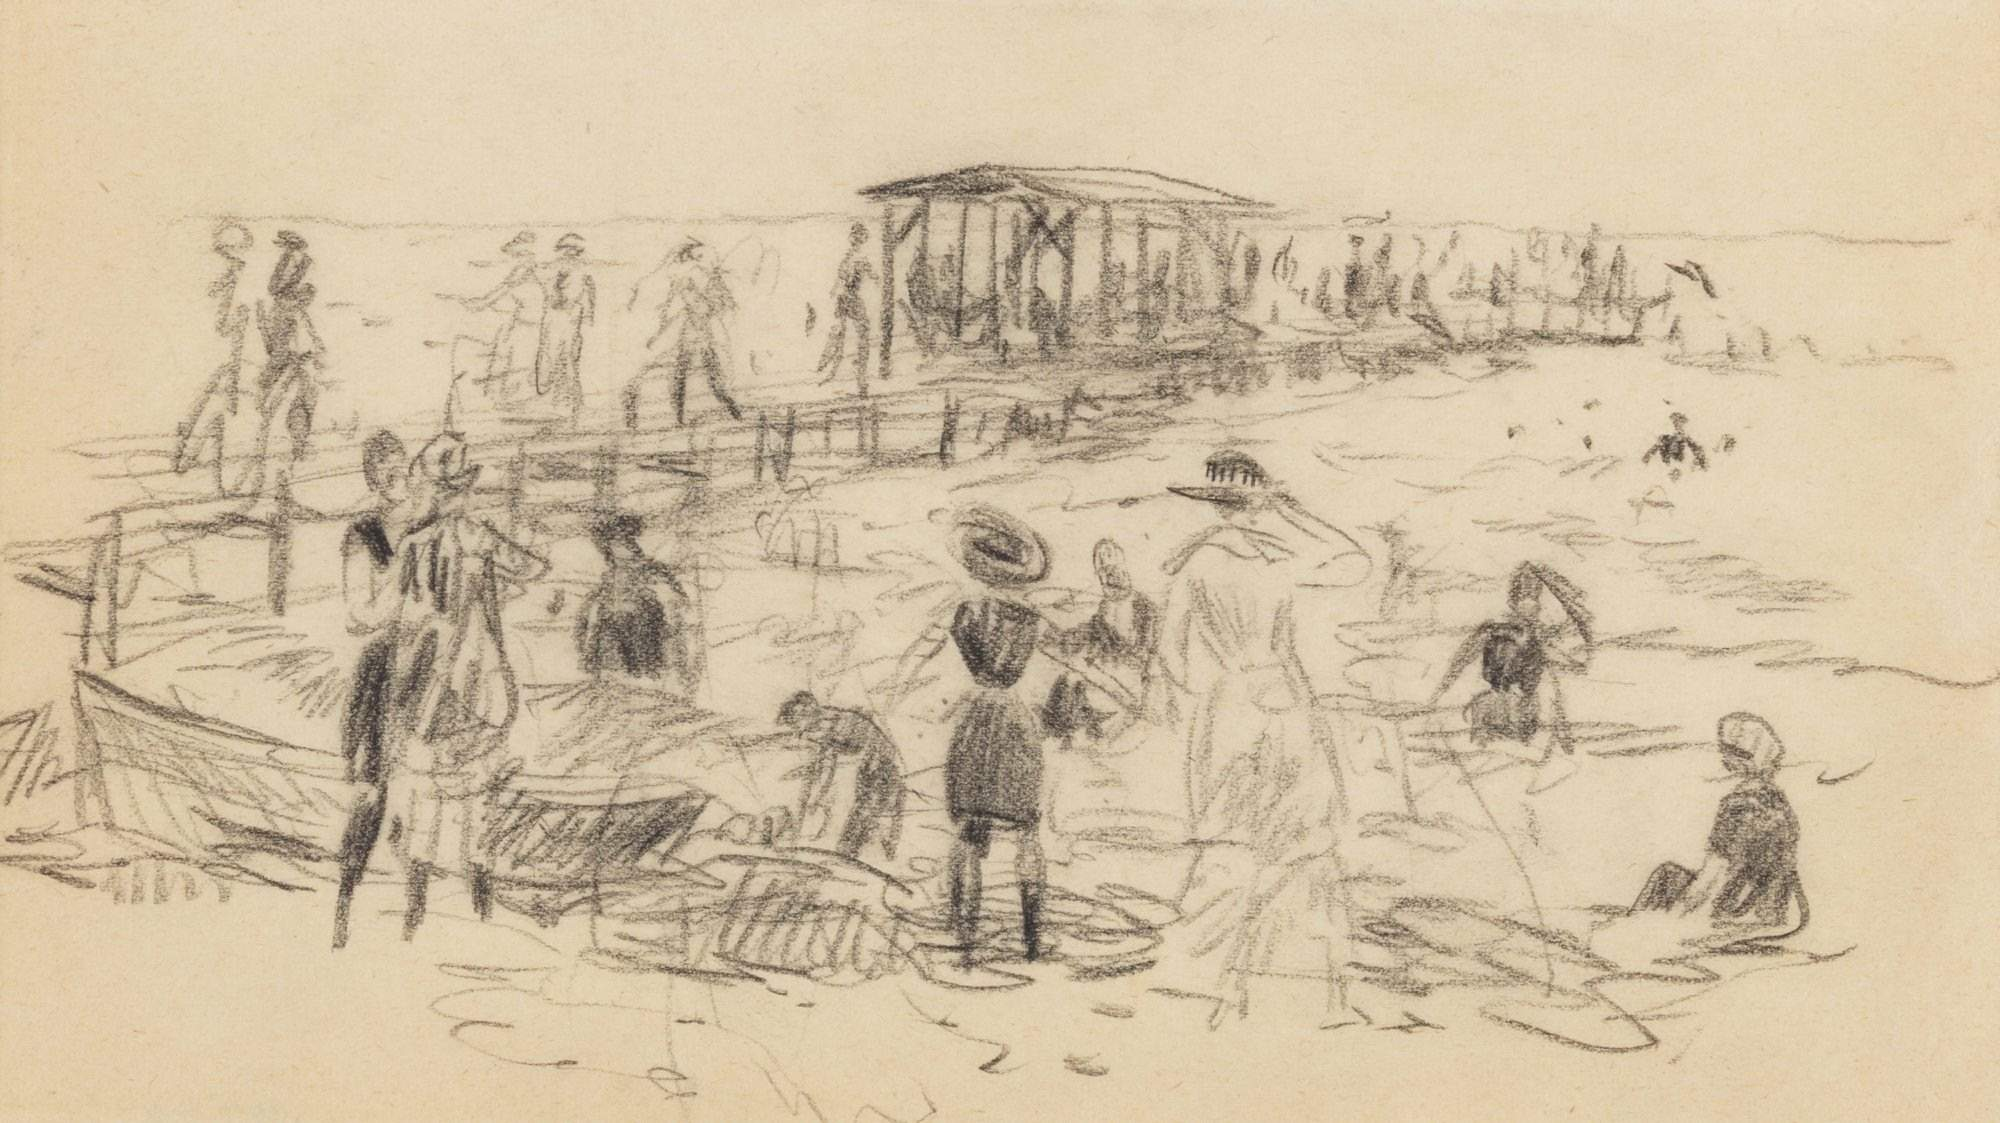 William J. Glackens (1870-1938). At the Beach; Bellport, Long Island, 1916. At the Beach; Bellport, Long Island; 4 5/8 x 8 1/4 in. Gift of Ira Glackens, the artist's son, 1957.26. Pennsylvania Academy of the Fine Arts